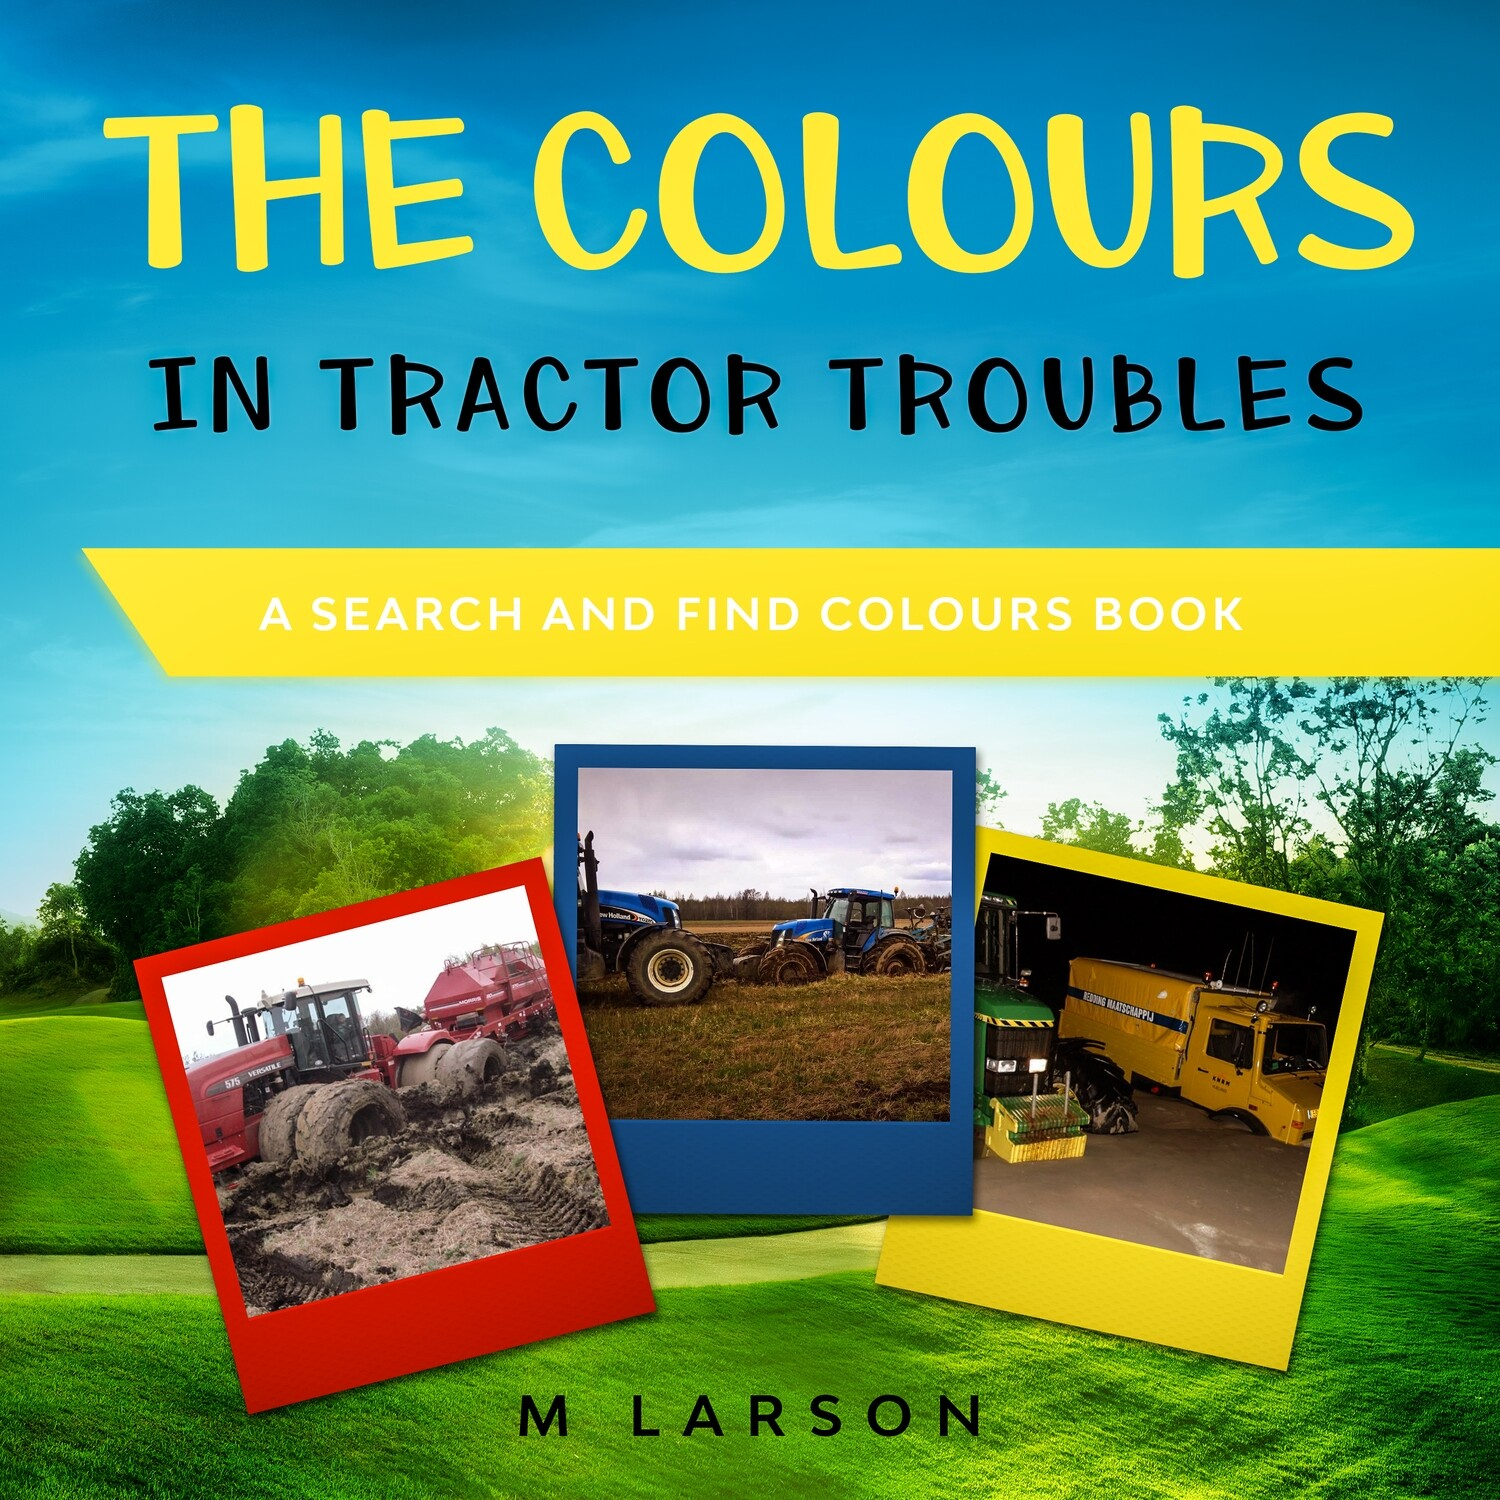 Colours in Tractor Troubles, The: A Search and Find Colours Book